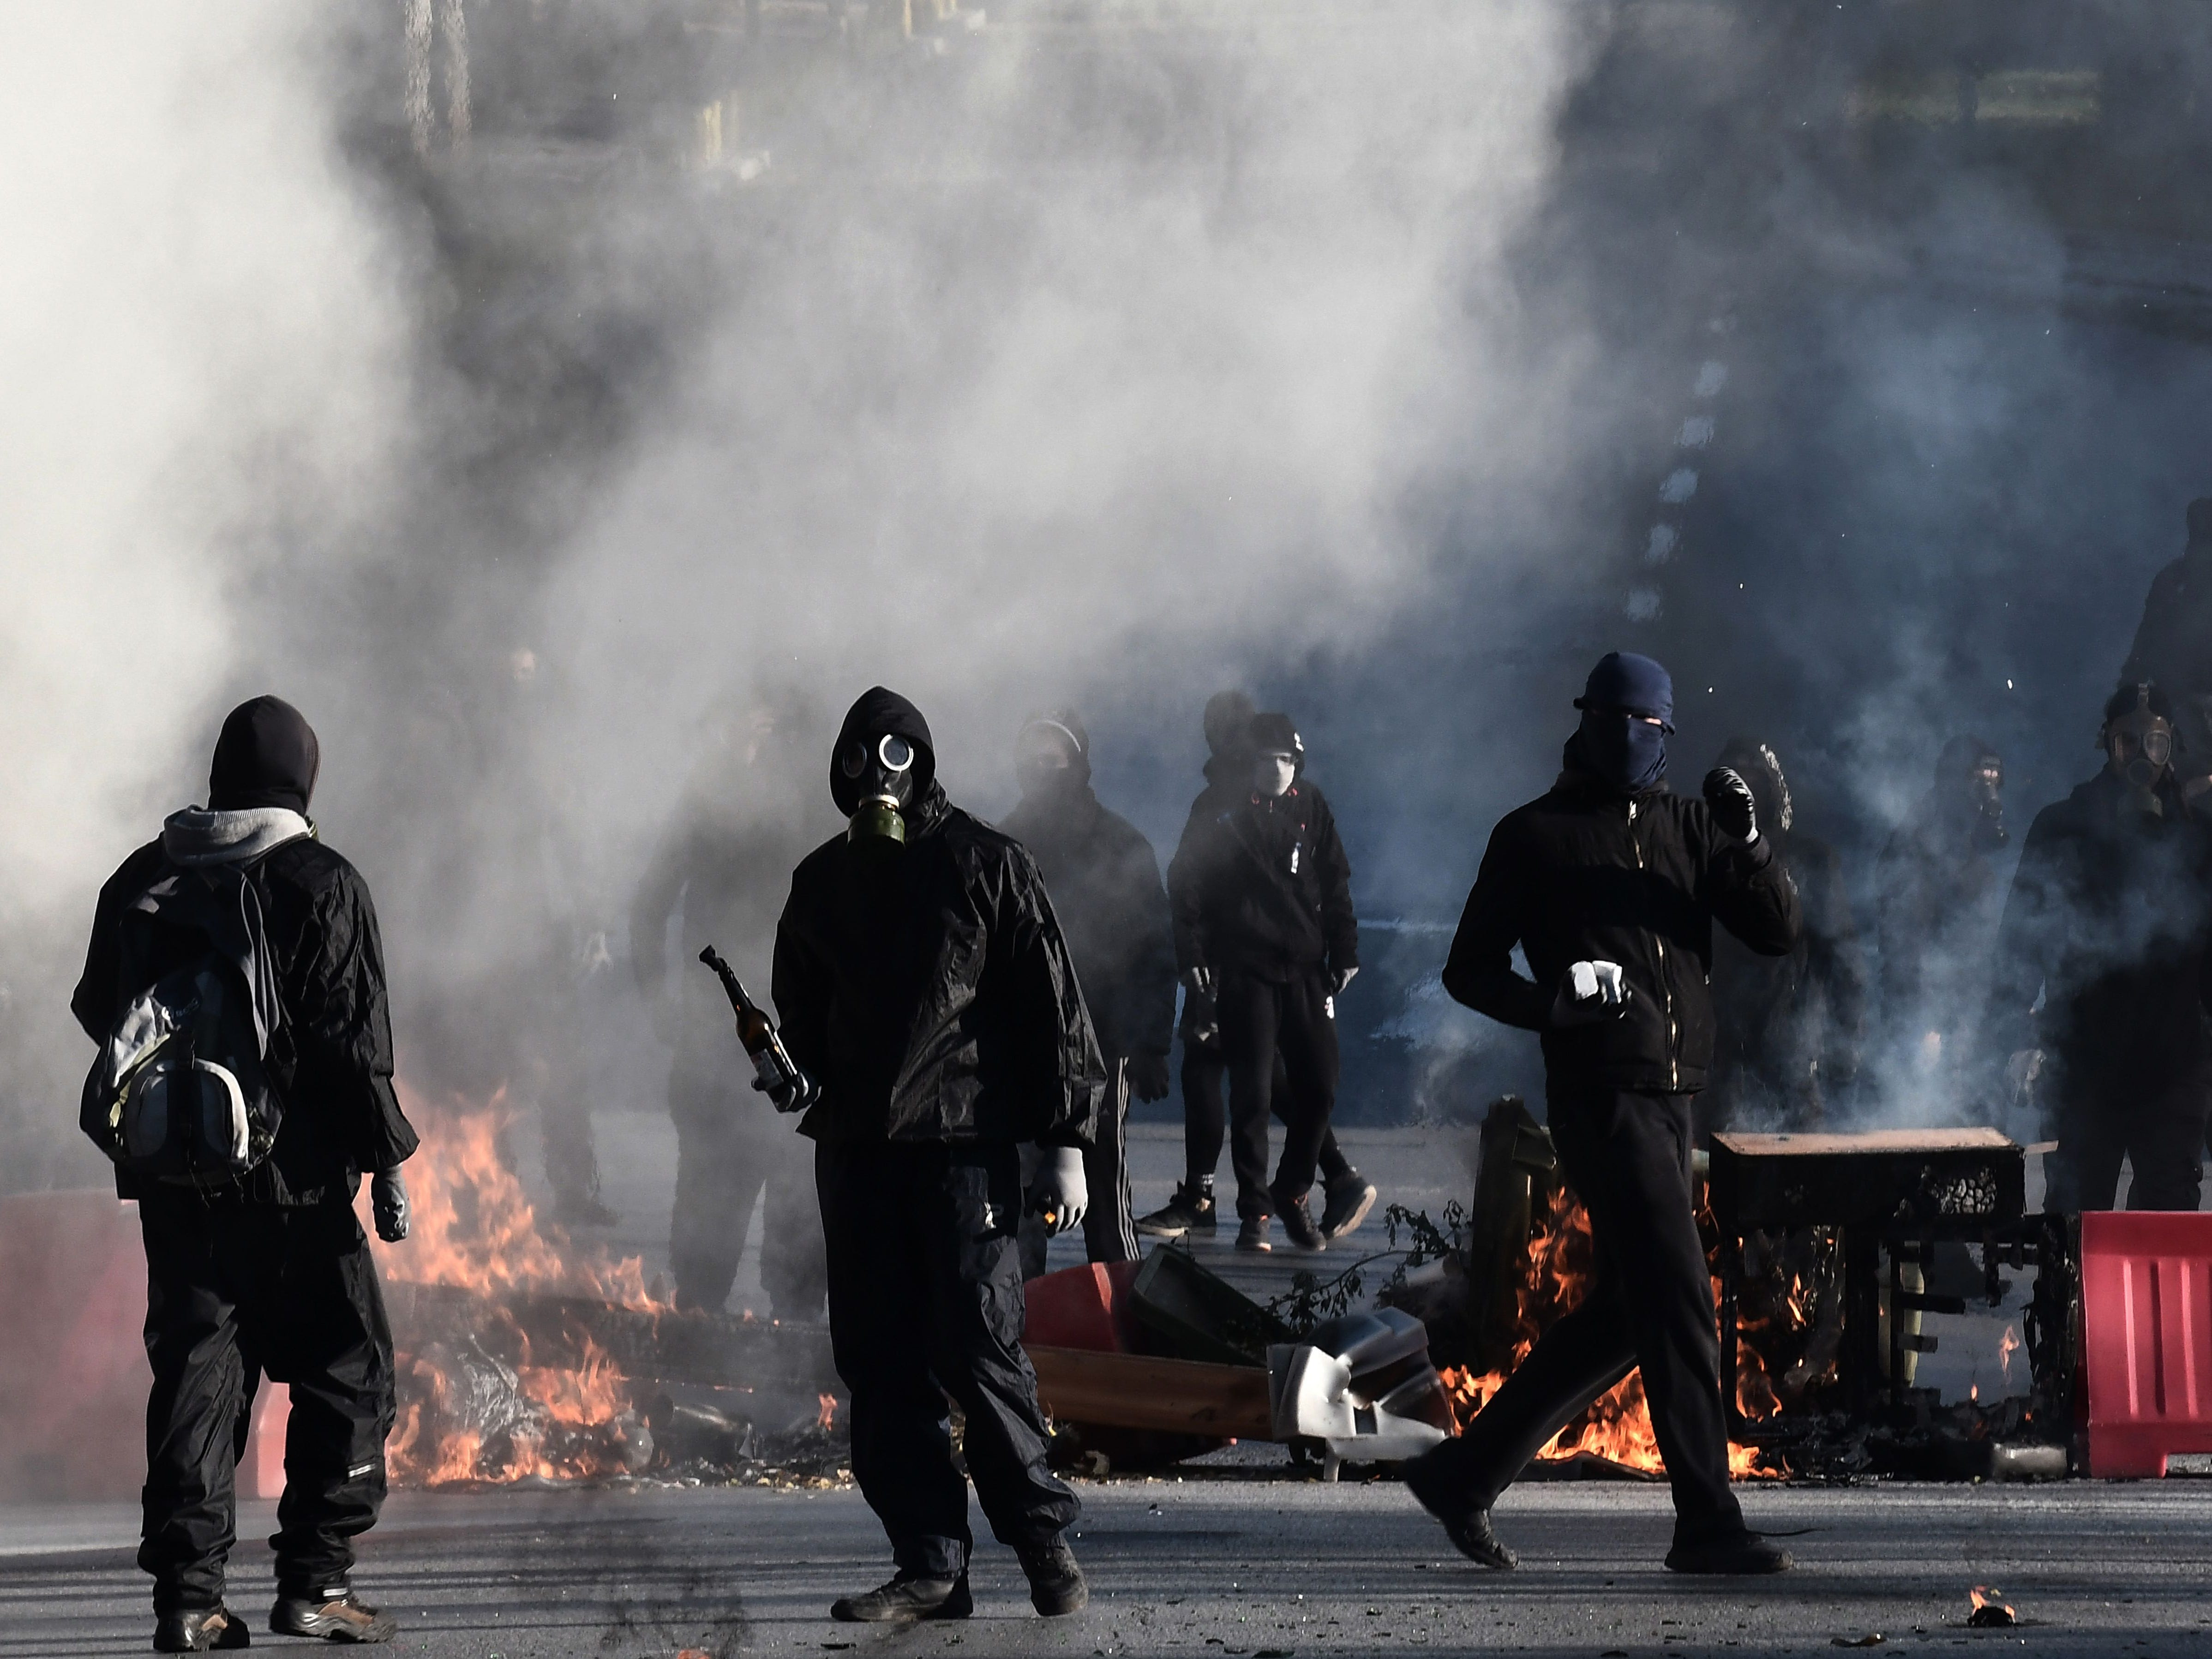 Protesters holding gasoline bombs are seen near barricades during a demonstration in Athens on Dec. 6, 2018 to commemorate the anniversary of the fatal shooting of a teenager which sparked major riots in Greece in 2008.